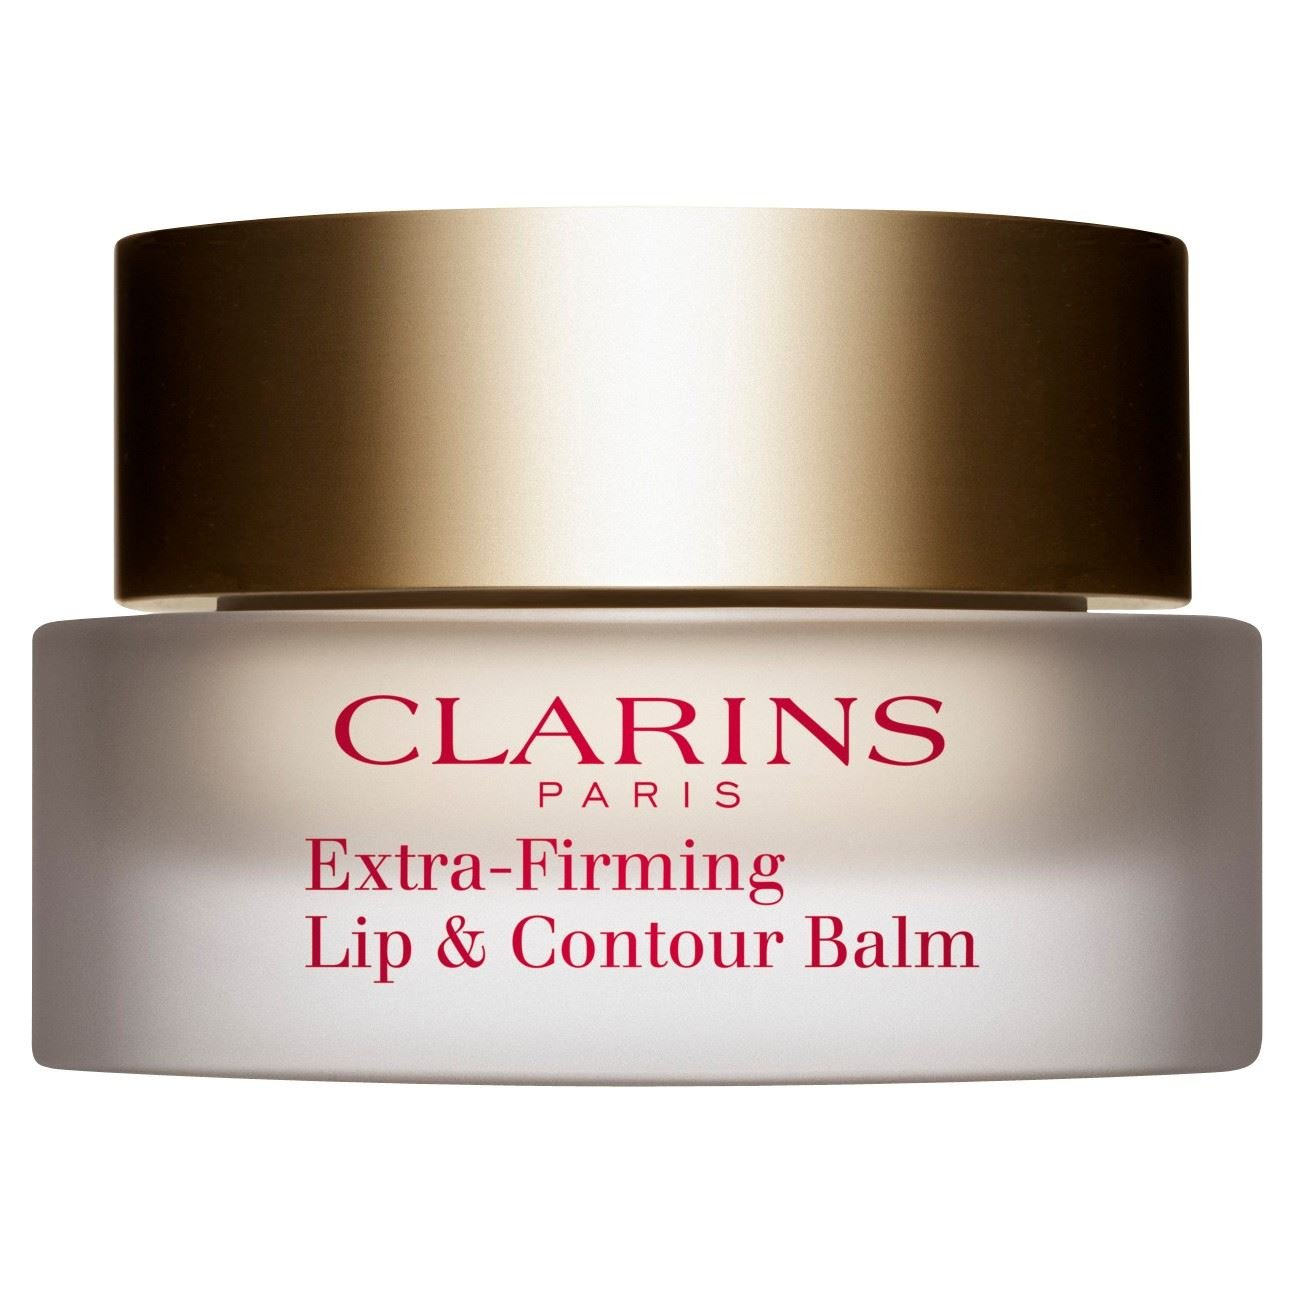 Clarins Extra-Firming Lip and Contour Balm - Pack of 2